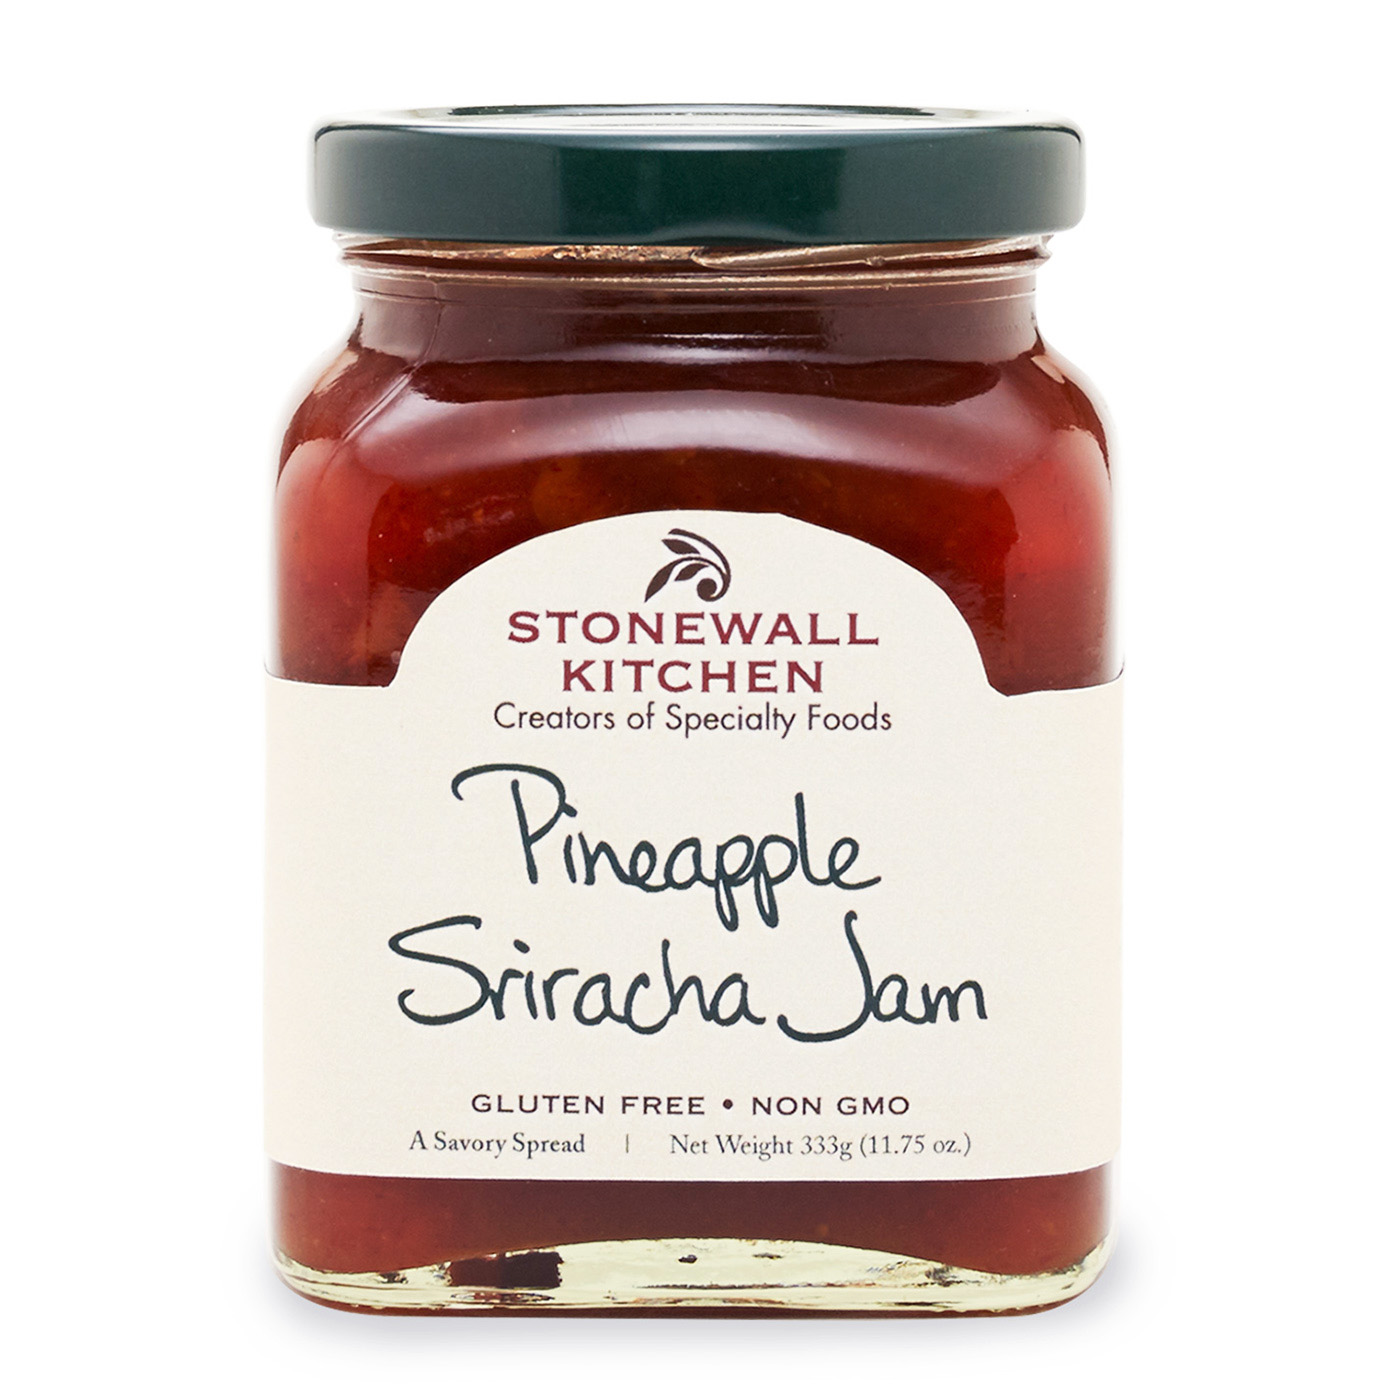 stonewall kitchen jam 36 inch curtains pineapple sriracha jams preserves and spreads